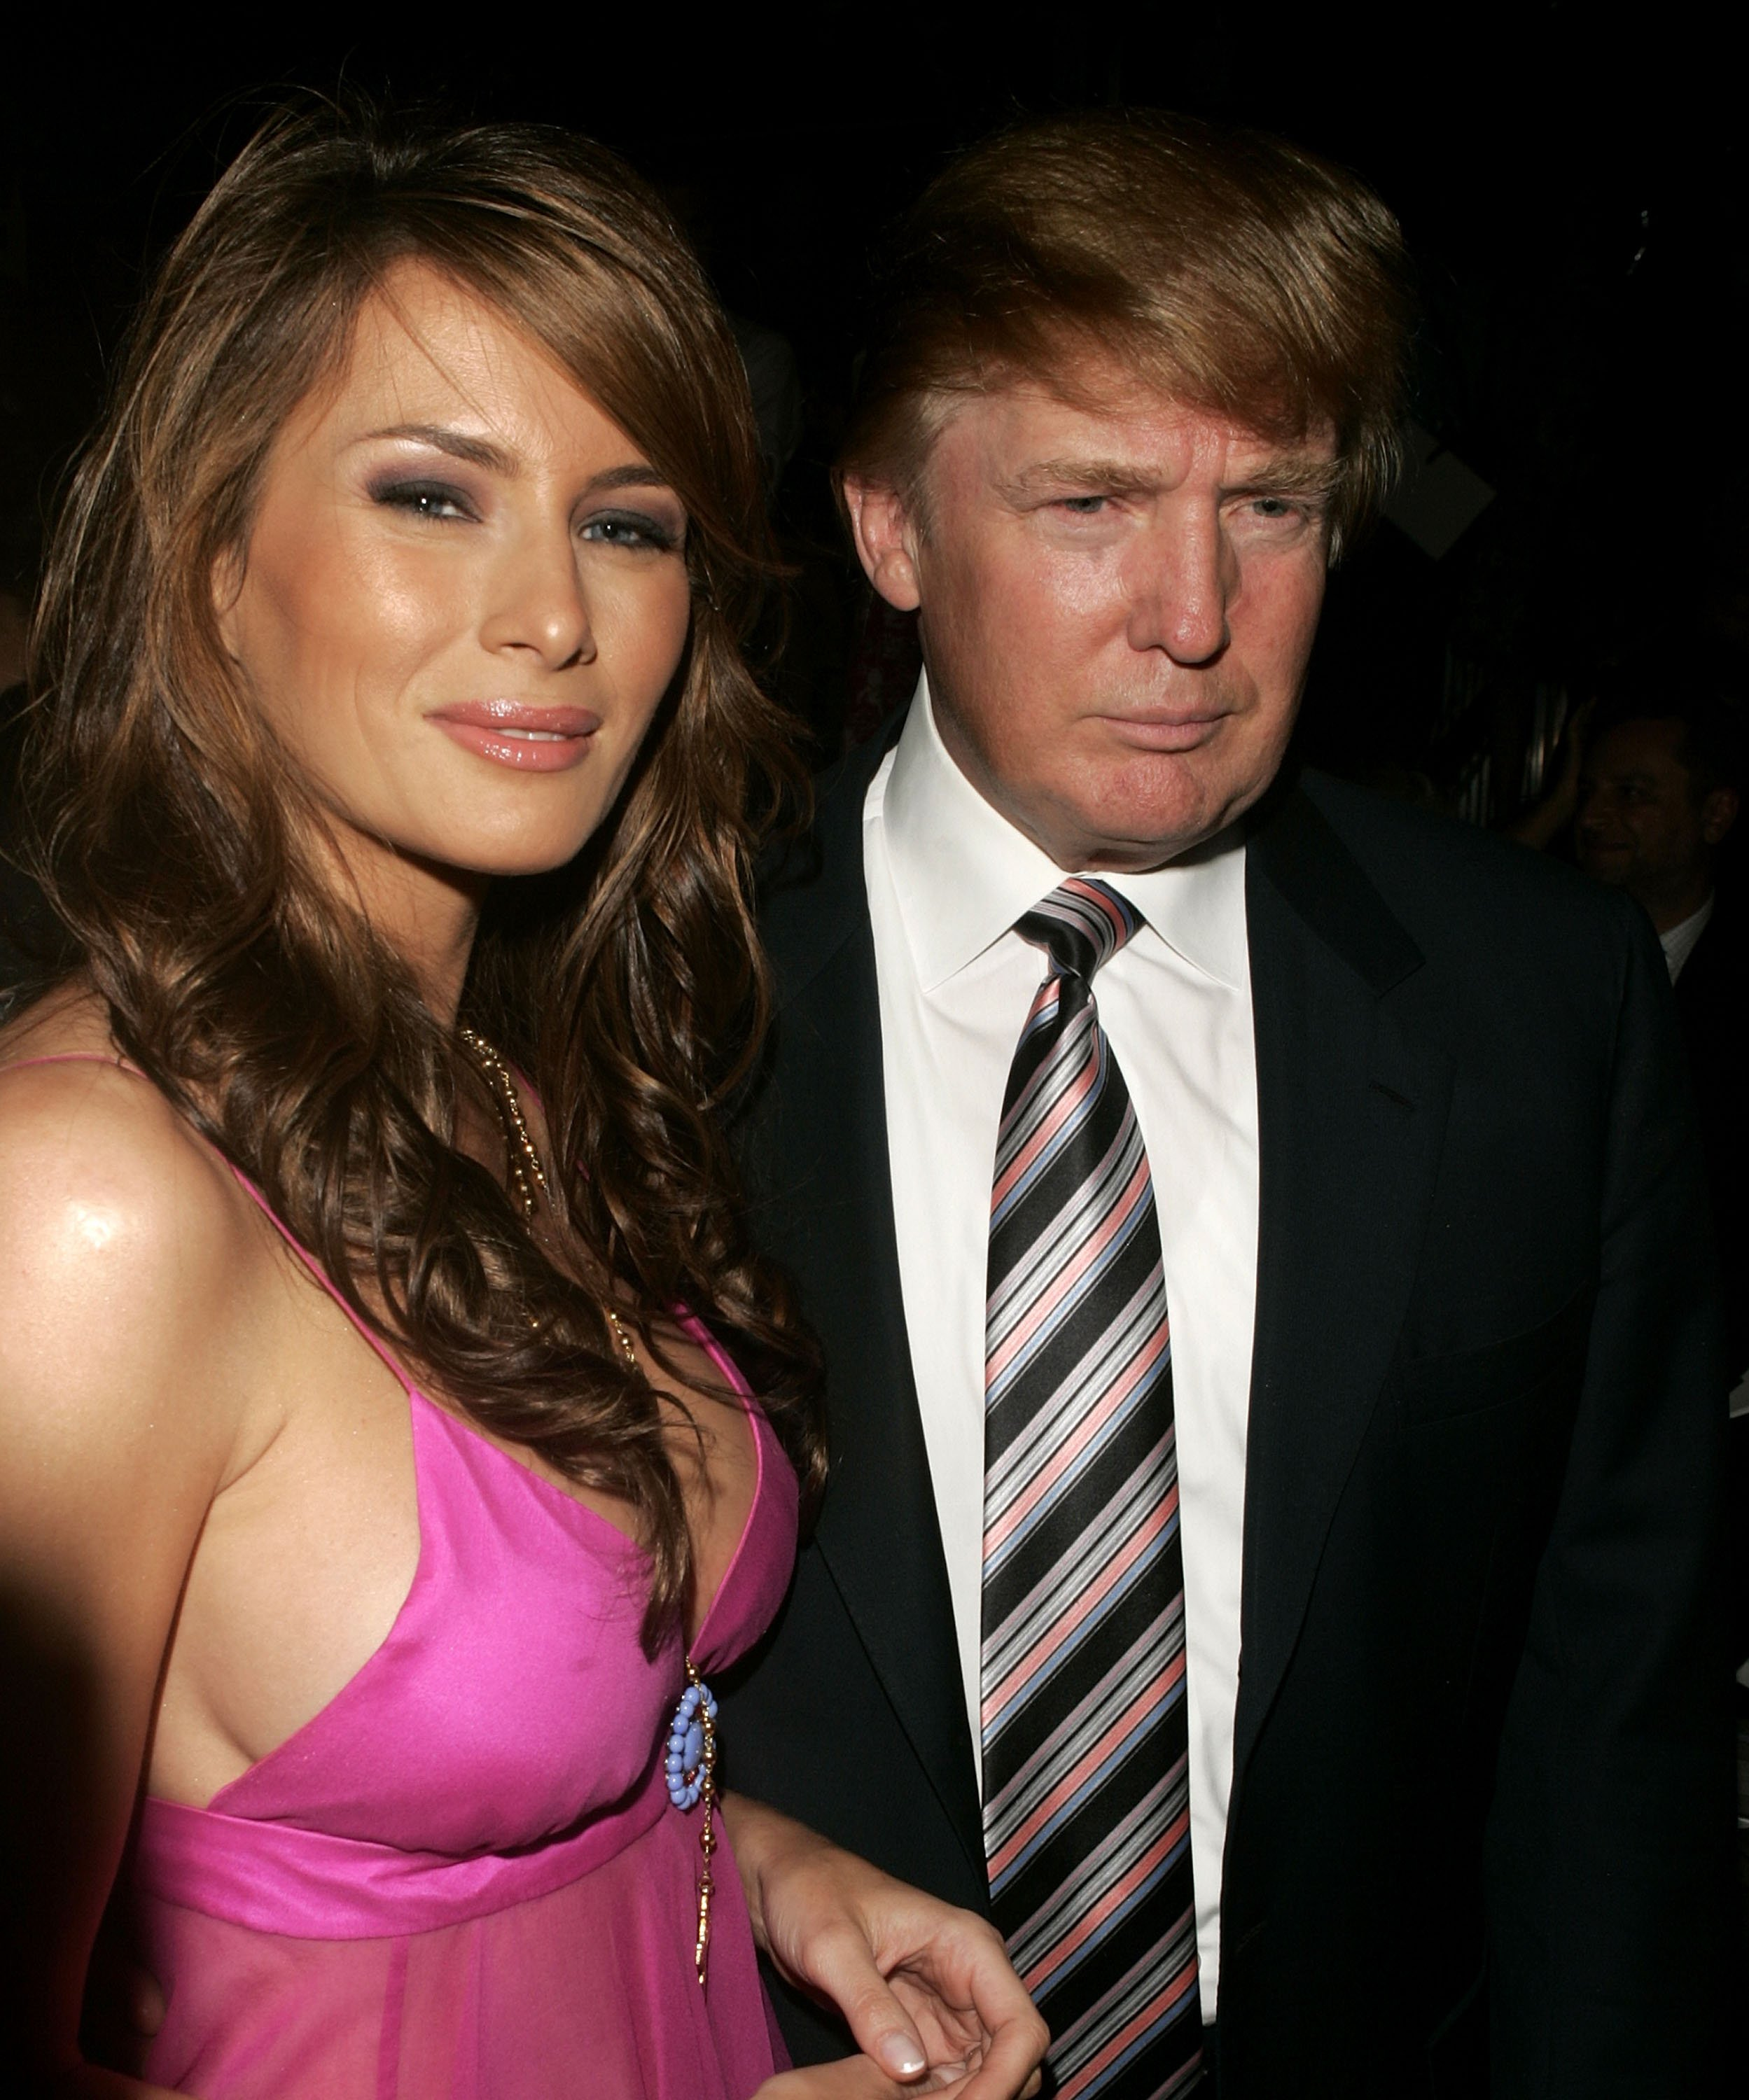 President Donald Trump and Melania Trump before becoming the first couple | Photo: Getty Images